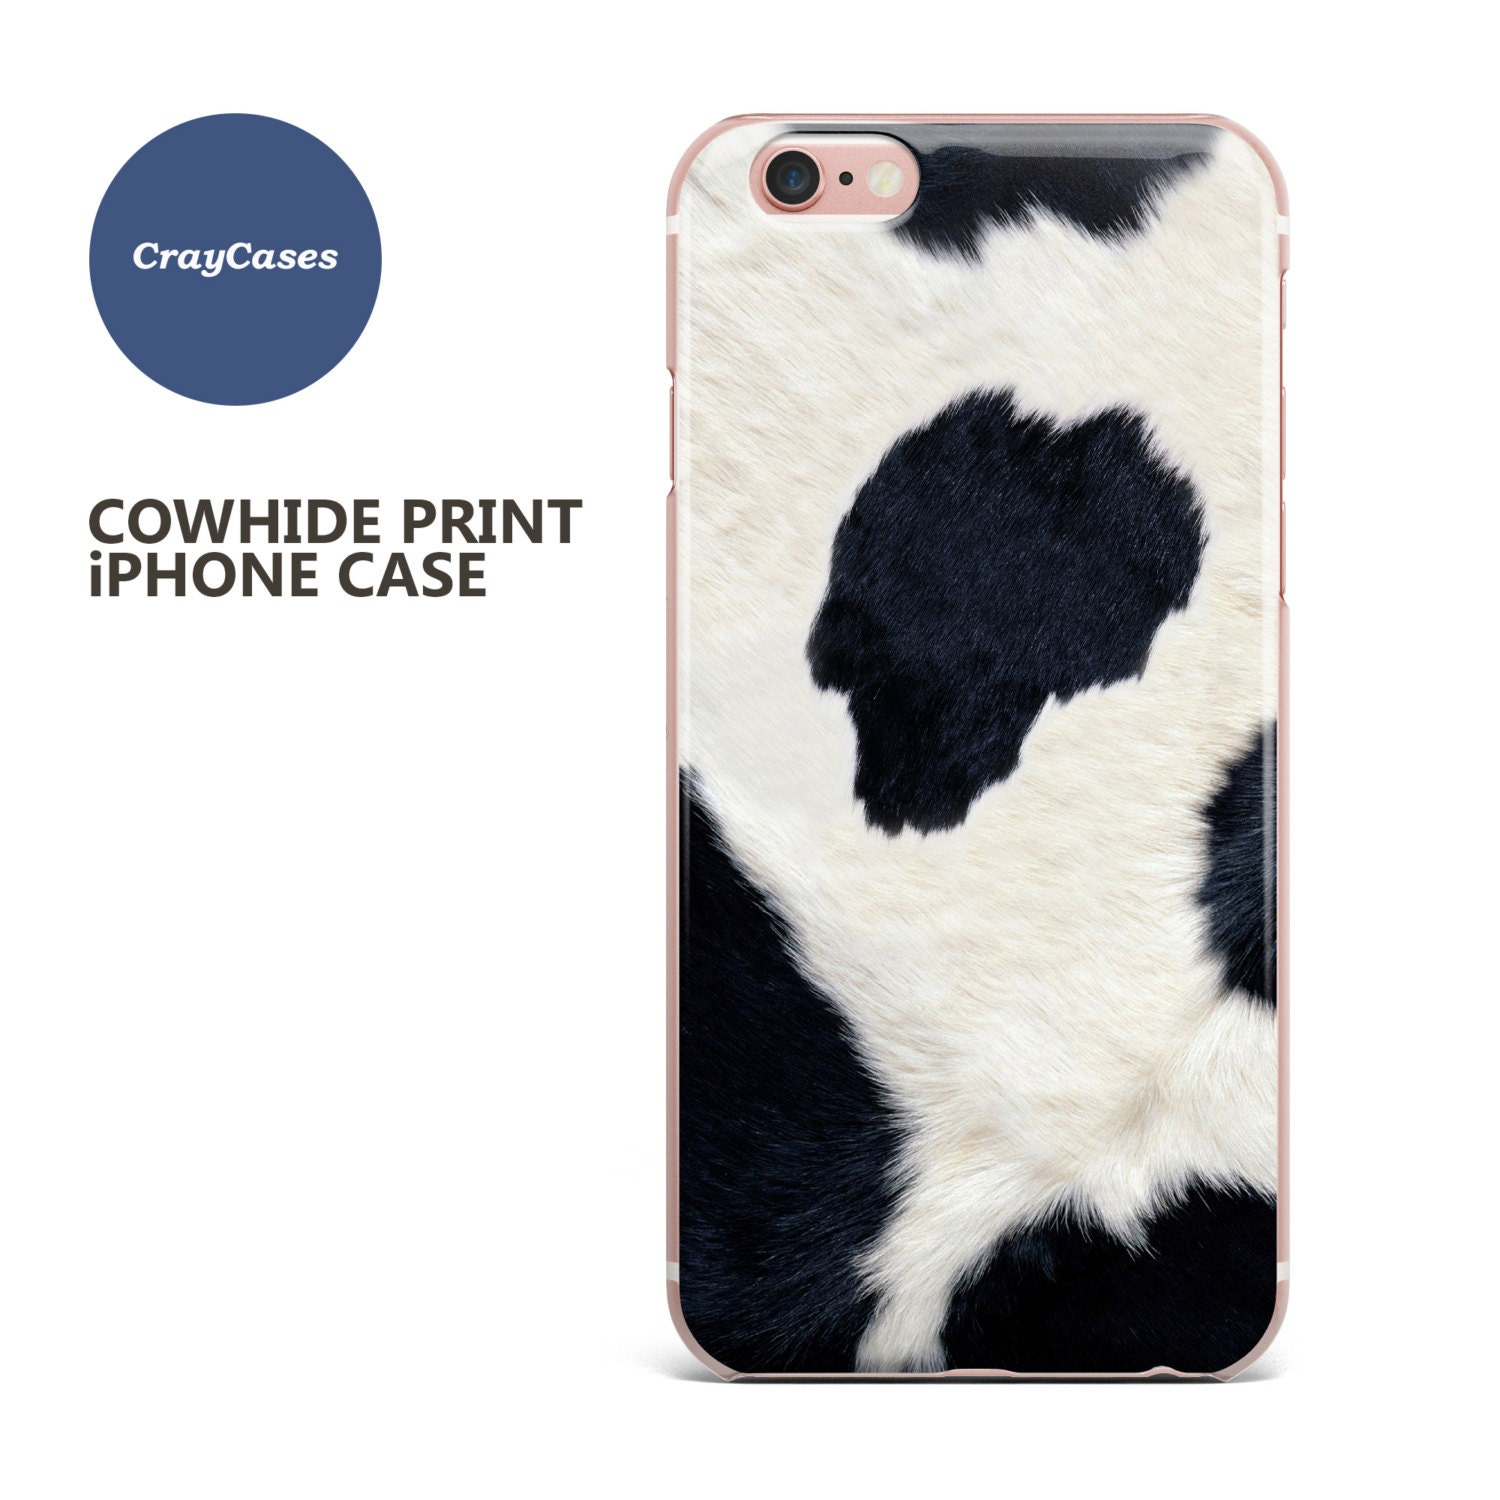 Cowhide iPhone 6s Case Cowhide iPhone 6s Plus Case Cowhide iPhone 7 Case Cowhide iPhone 6 Plus Case (Shipped From UK)